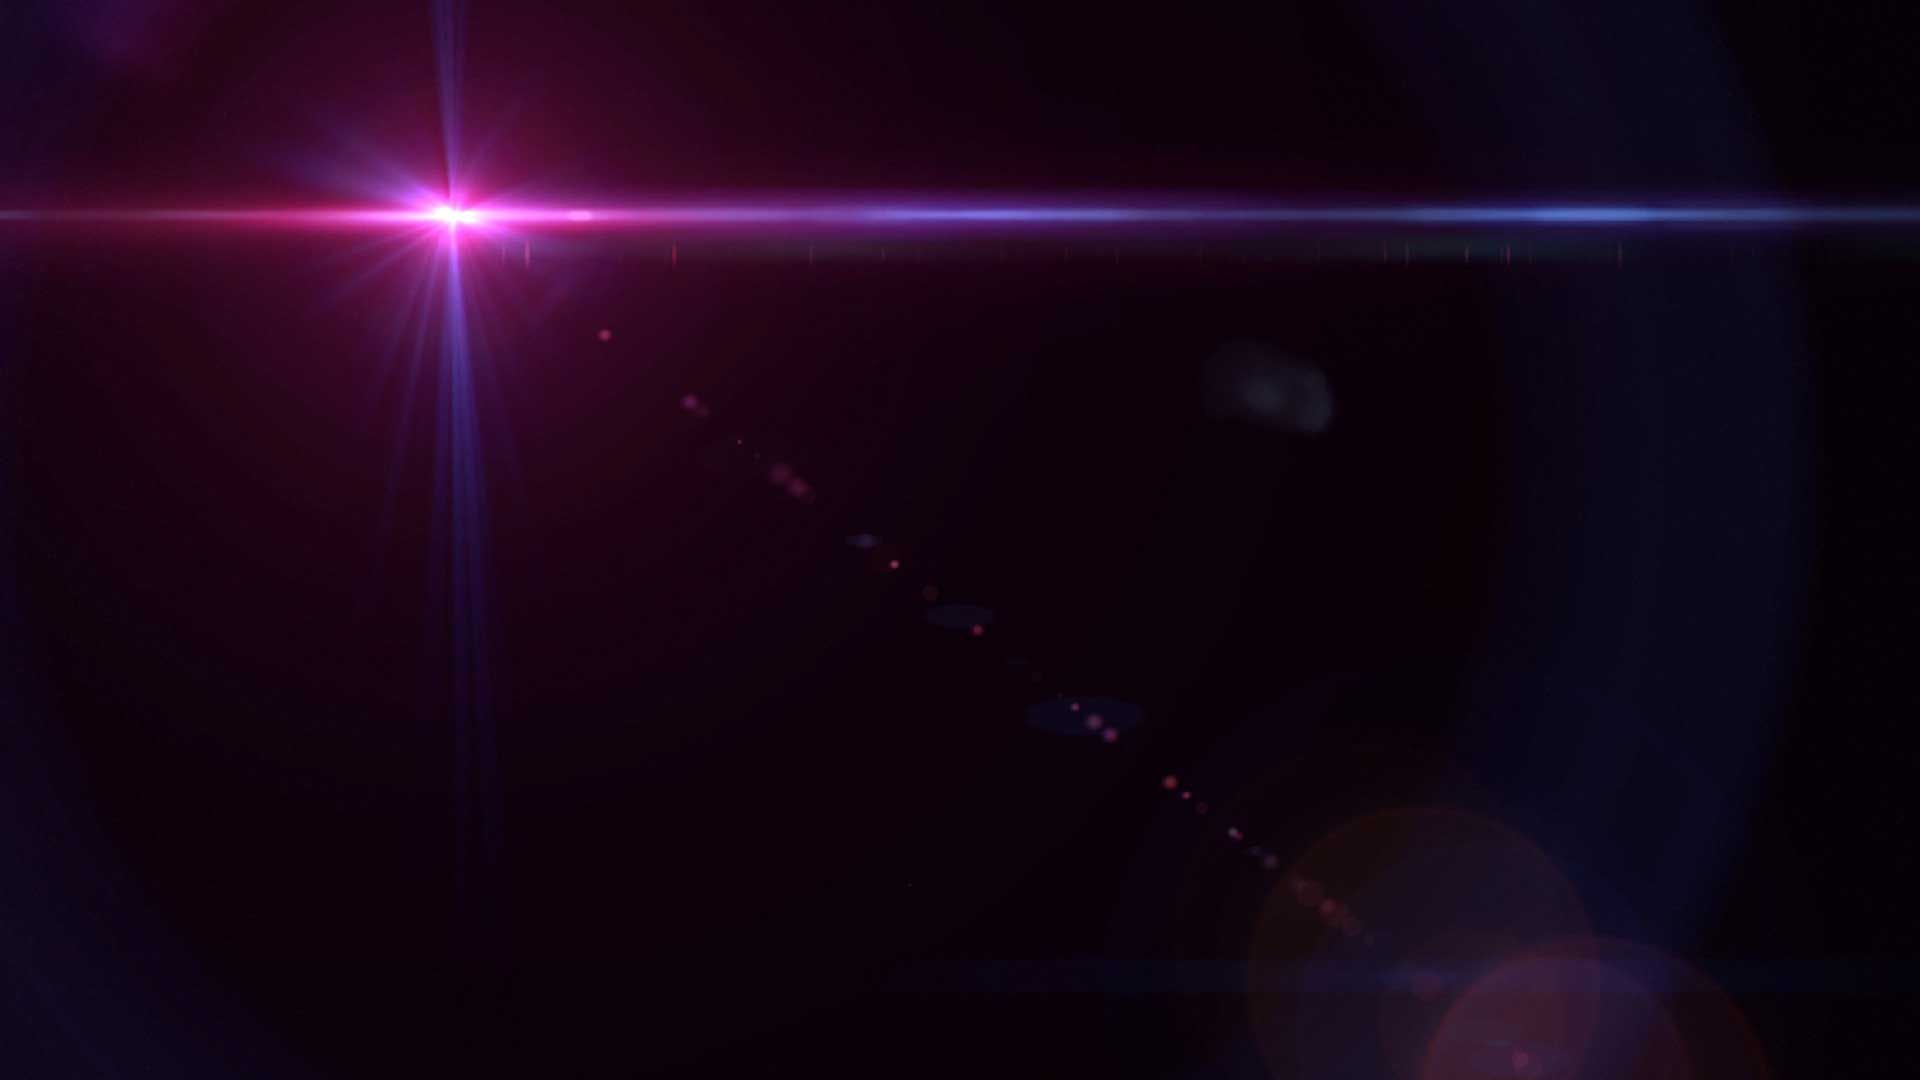 lens flare - effect | *photos | Lens flare effect, Anamorphic, Lens